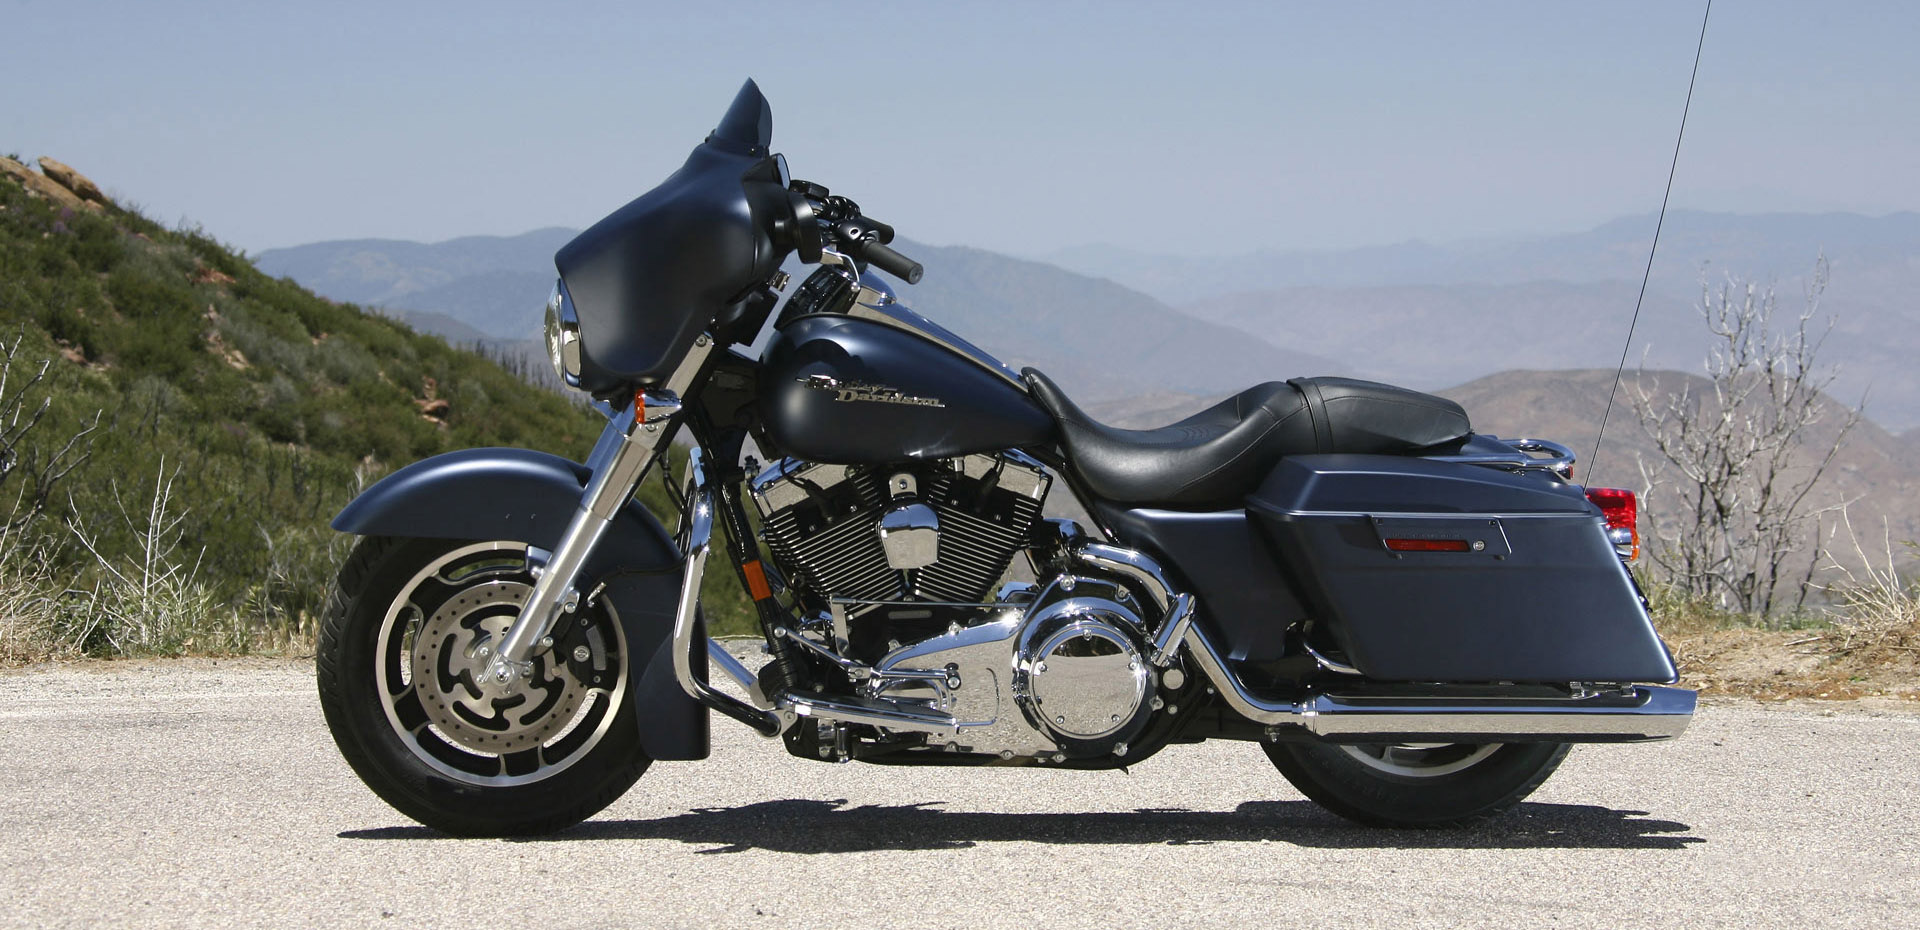 Harley Davidsons For Sale In Canada   2016 Motorcycle Reviews 1920x930